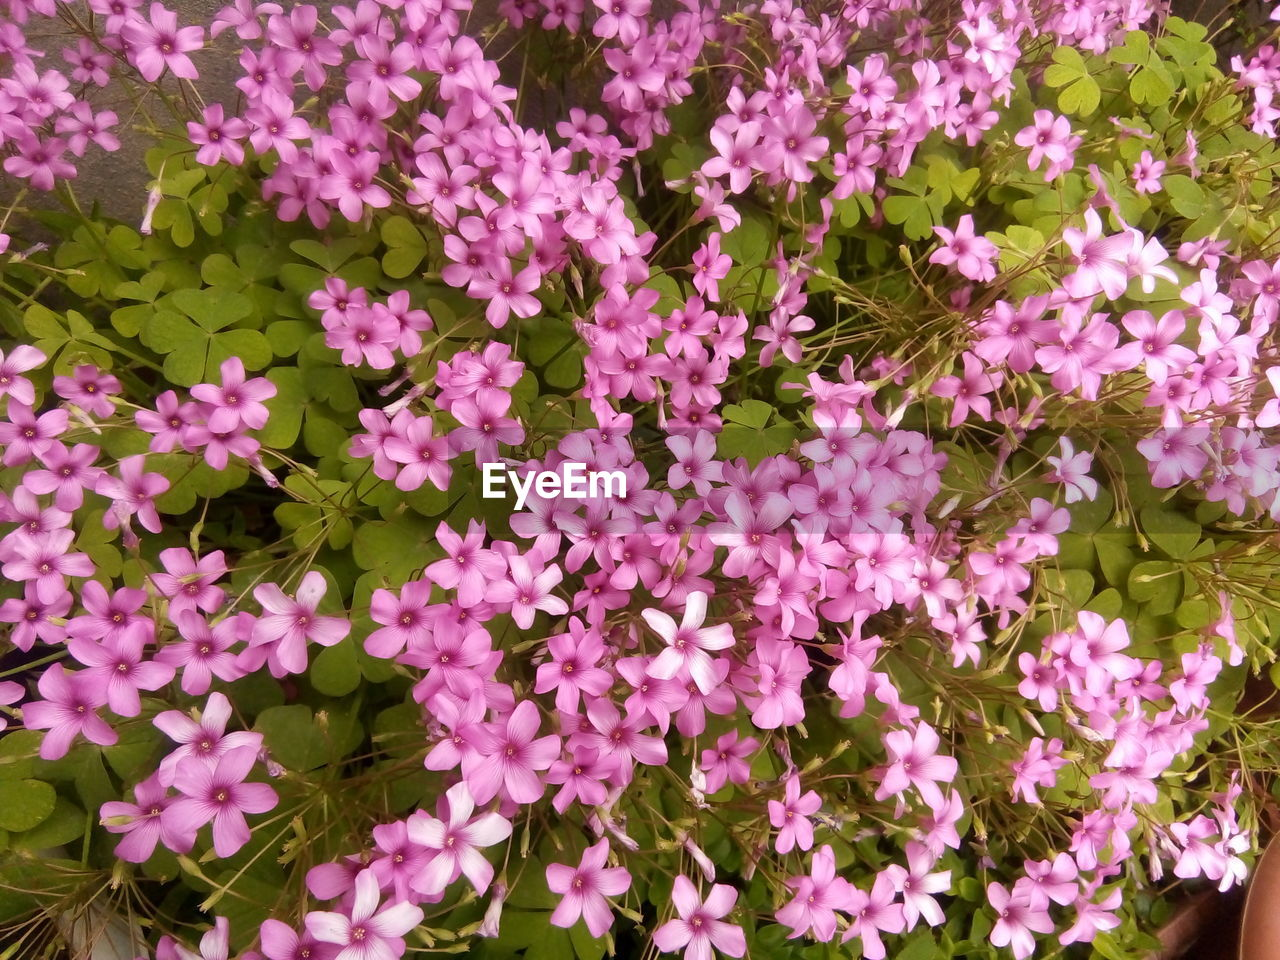 flower, flowering plant, plant, beauty in nature, freshness, pink color, fragility, petal, growth, vulnerability, nature, flower head, no people, plant part, inflorescence, leaf, close-up, day, full frame, high angle view, outdoors, flowerbed